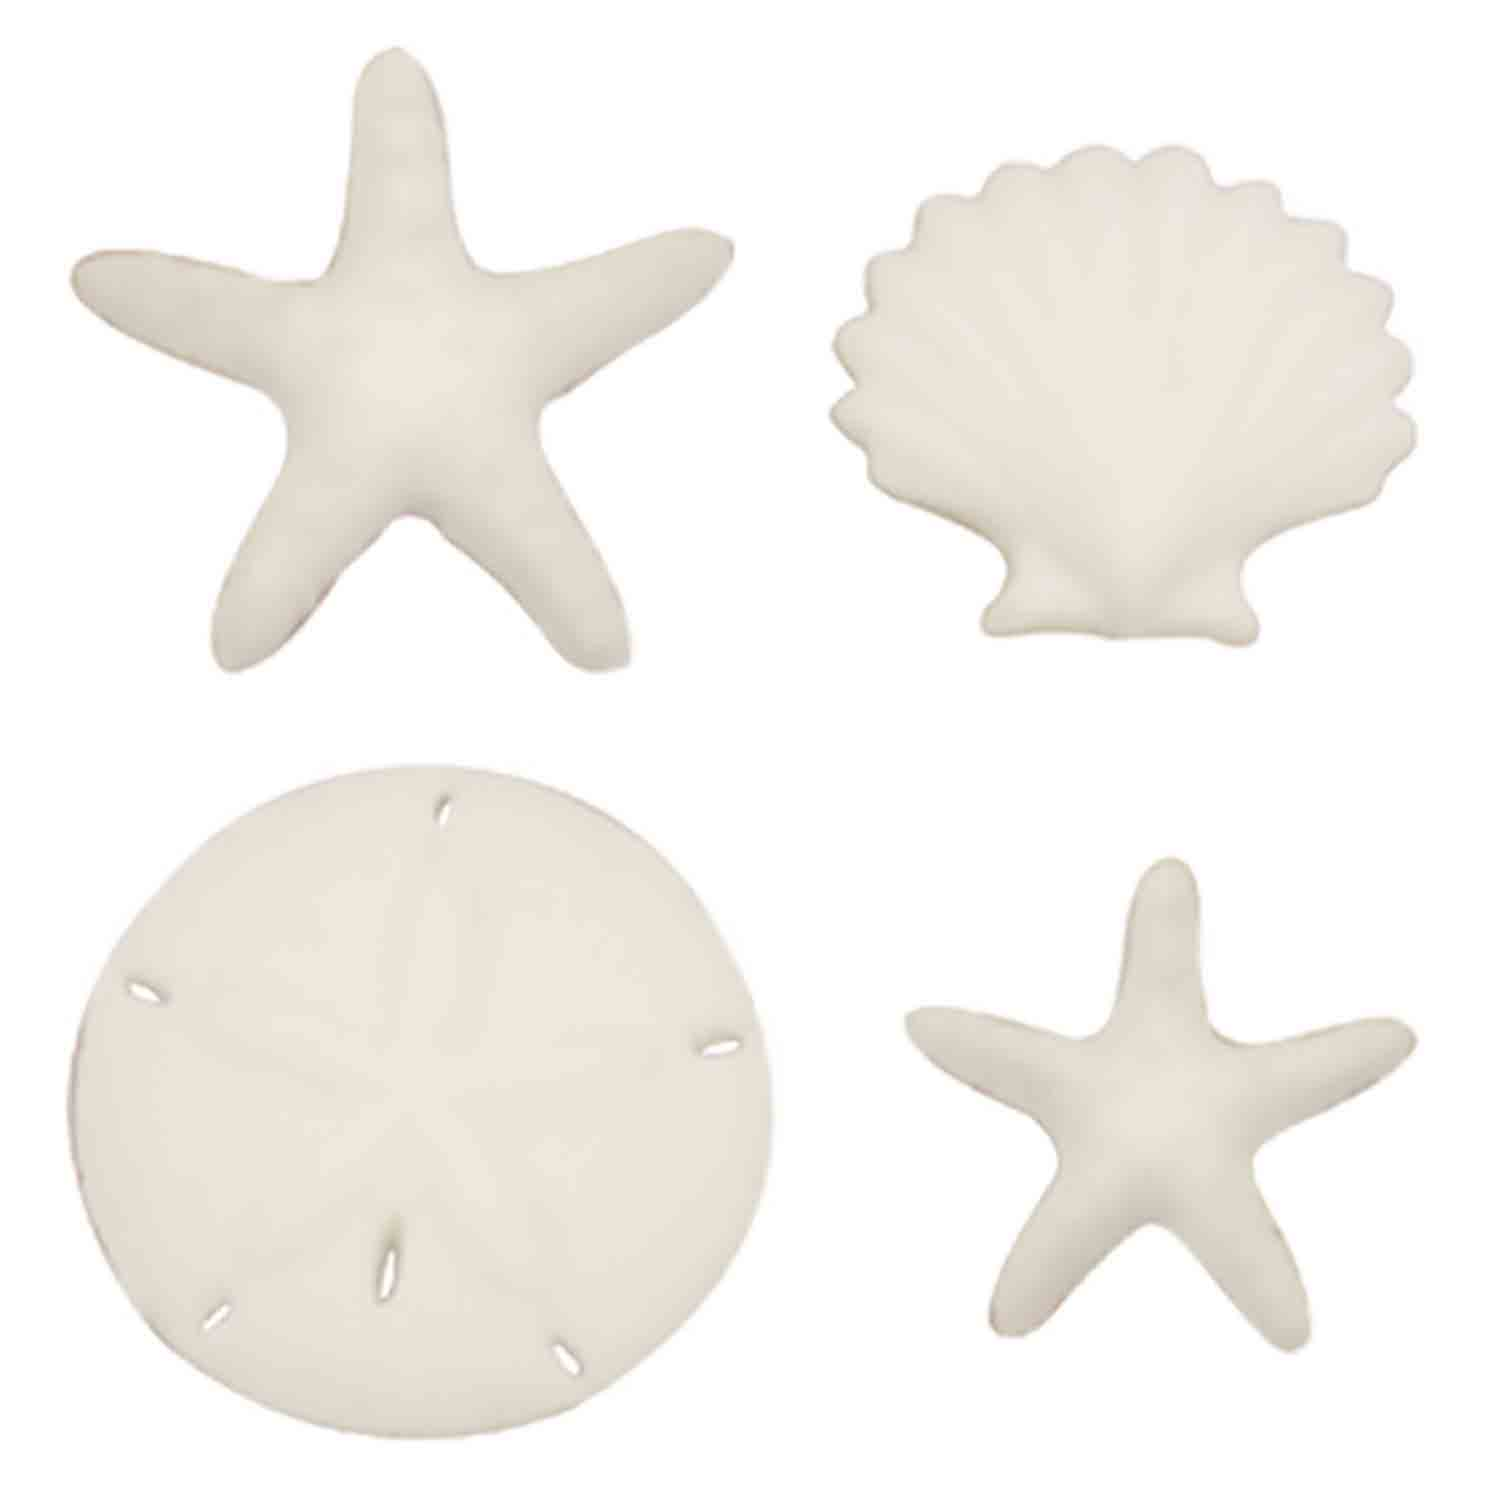 Dec-Ons® Molded Sugar - Beach Comber Assortment